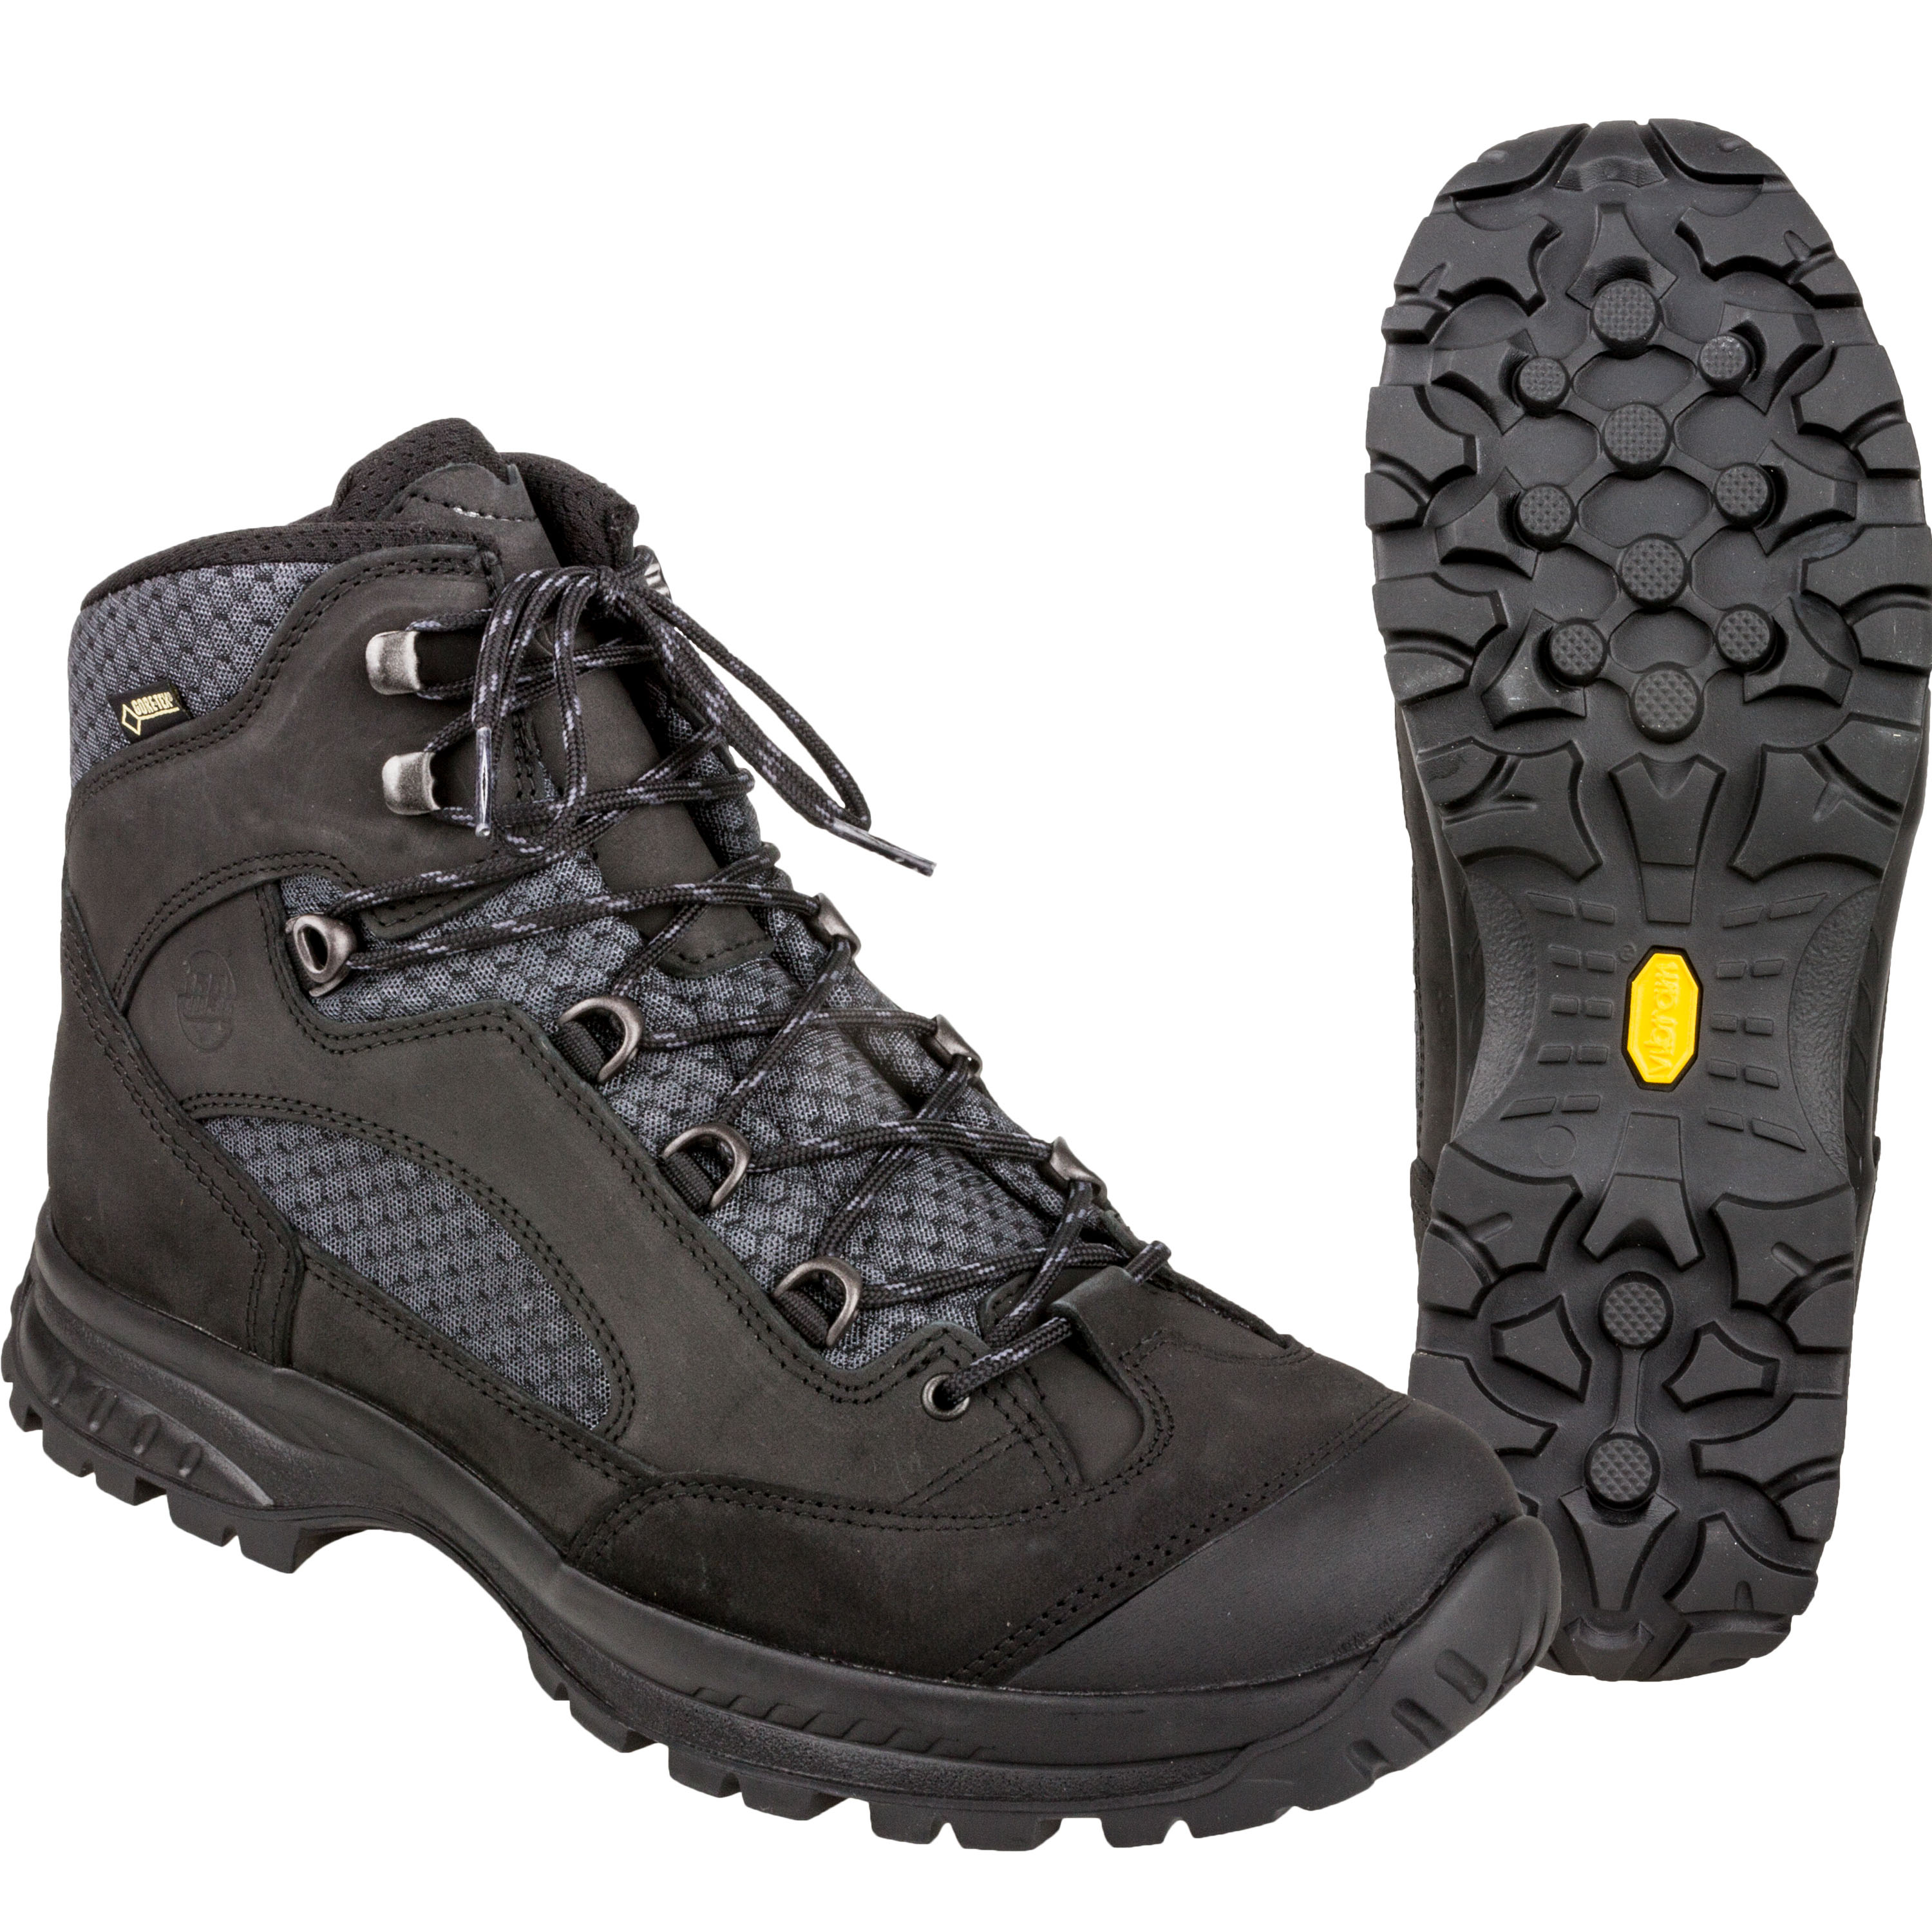 Hanwag Stiefel Banks II GTX all black